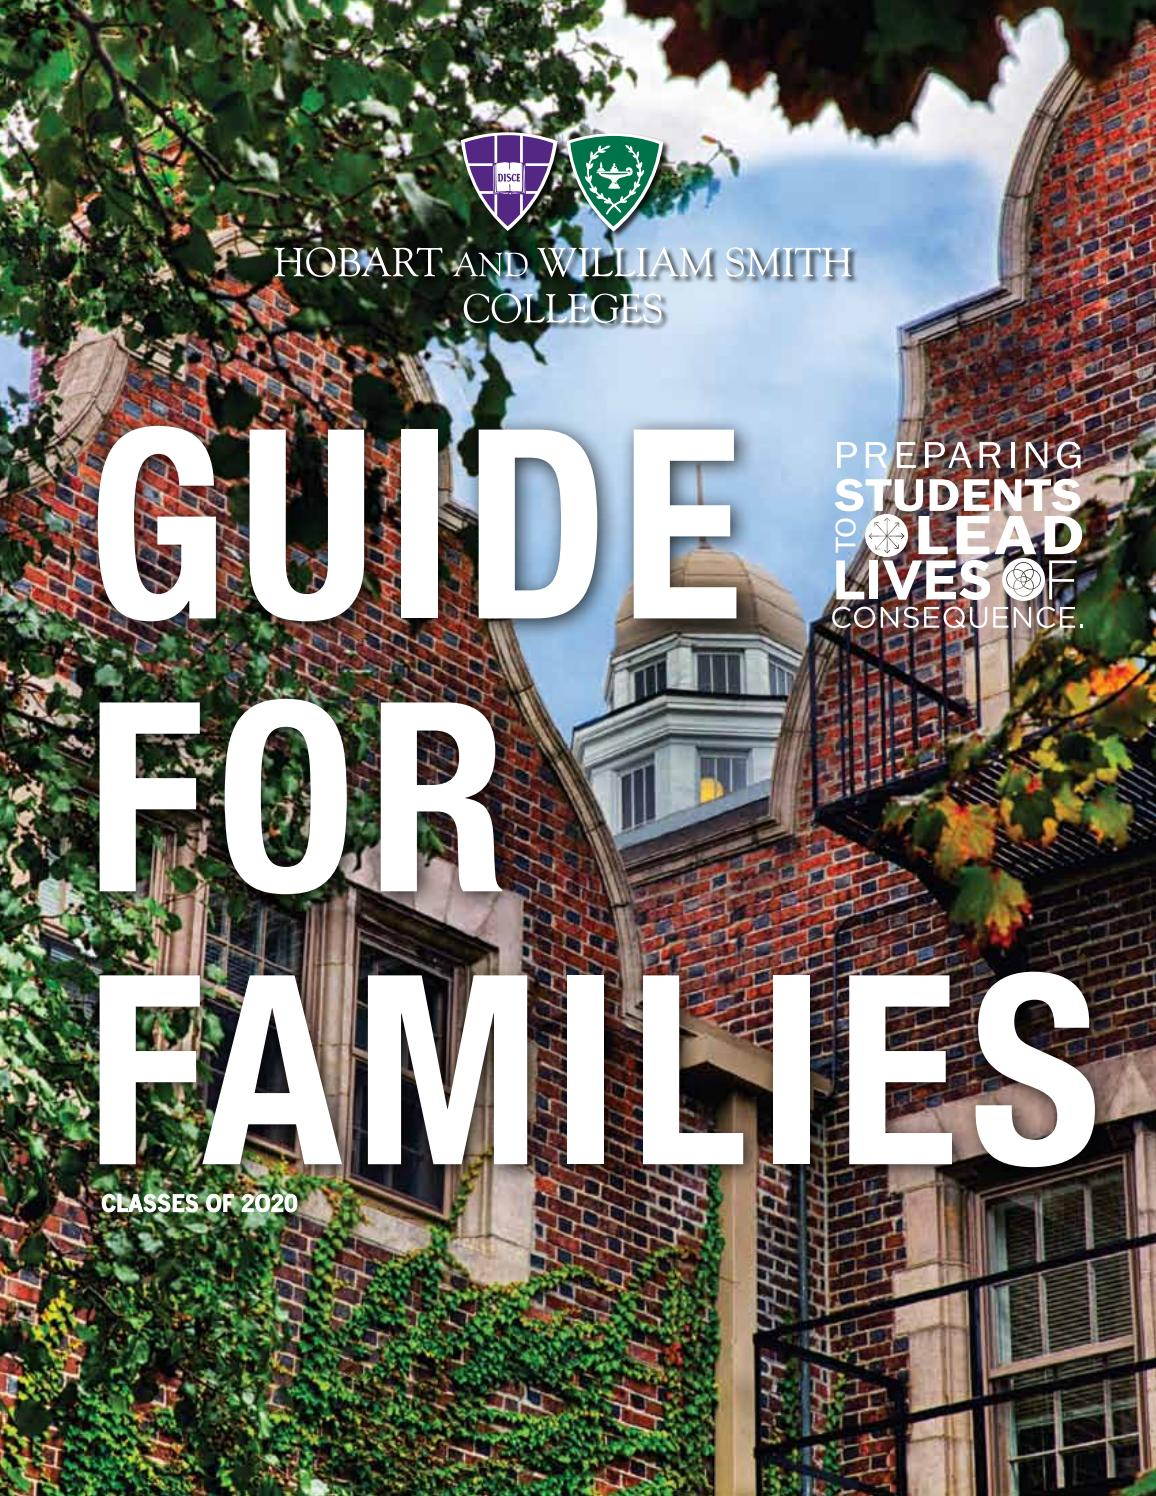 Guide For Families 2016Hobart And William Smith Colleges Intended For Hobart William Smith School Calendar